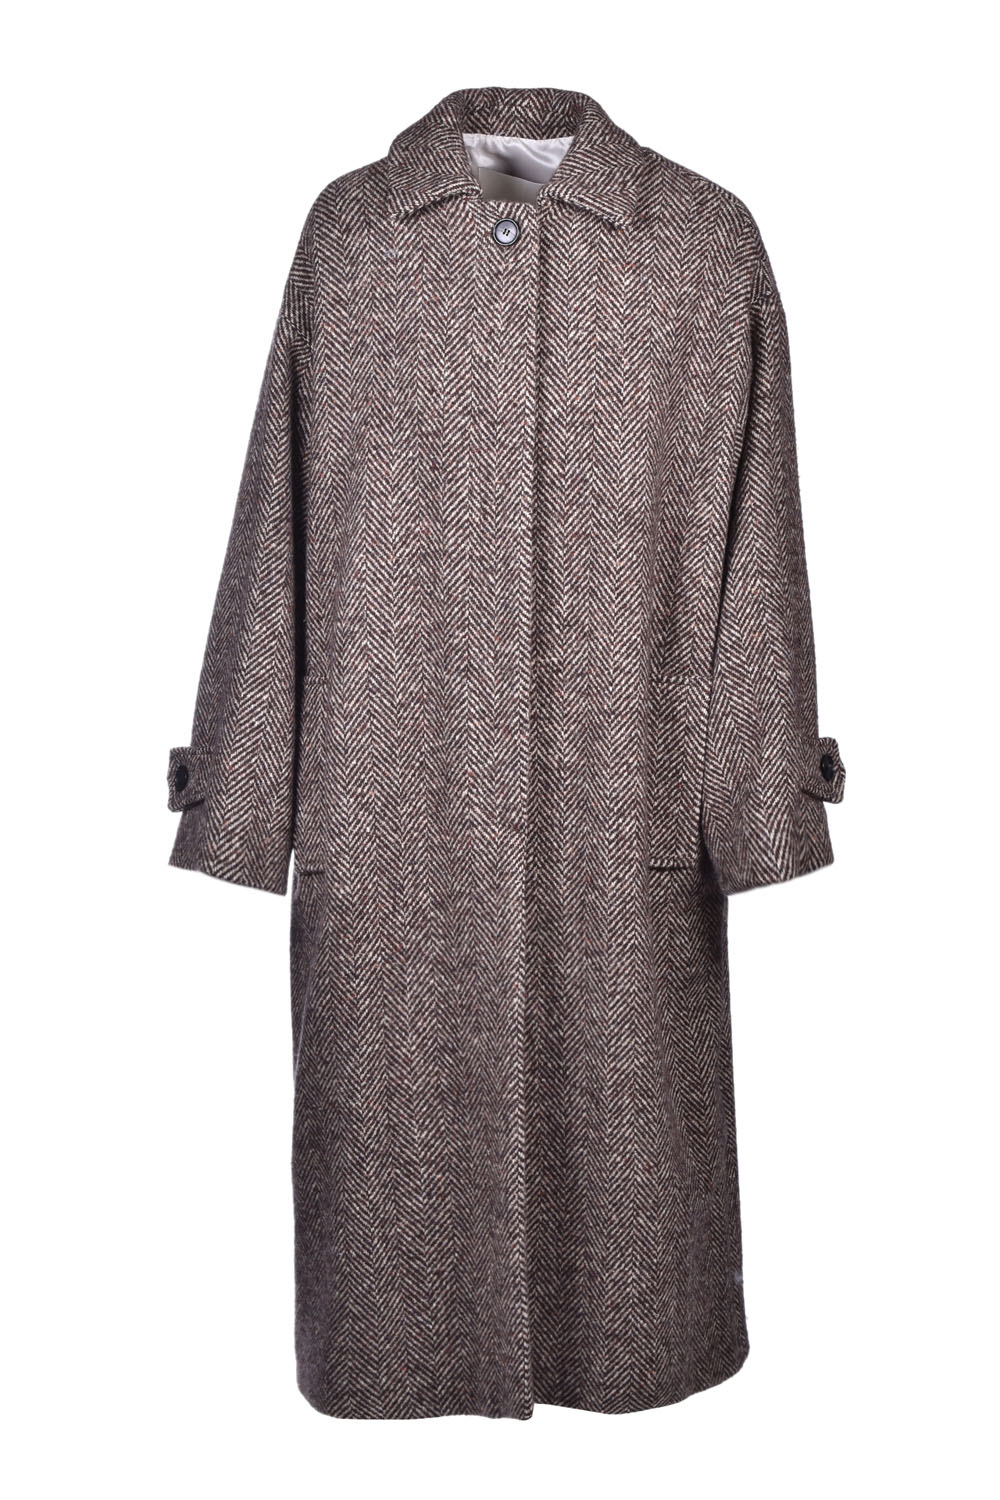 Herringbone coat in virgin wool JUCCA | Coat | J32160101675